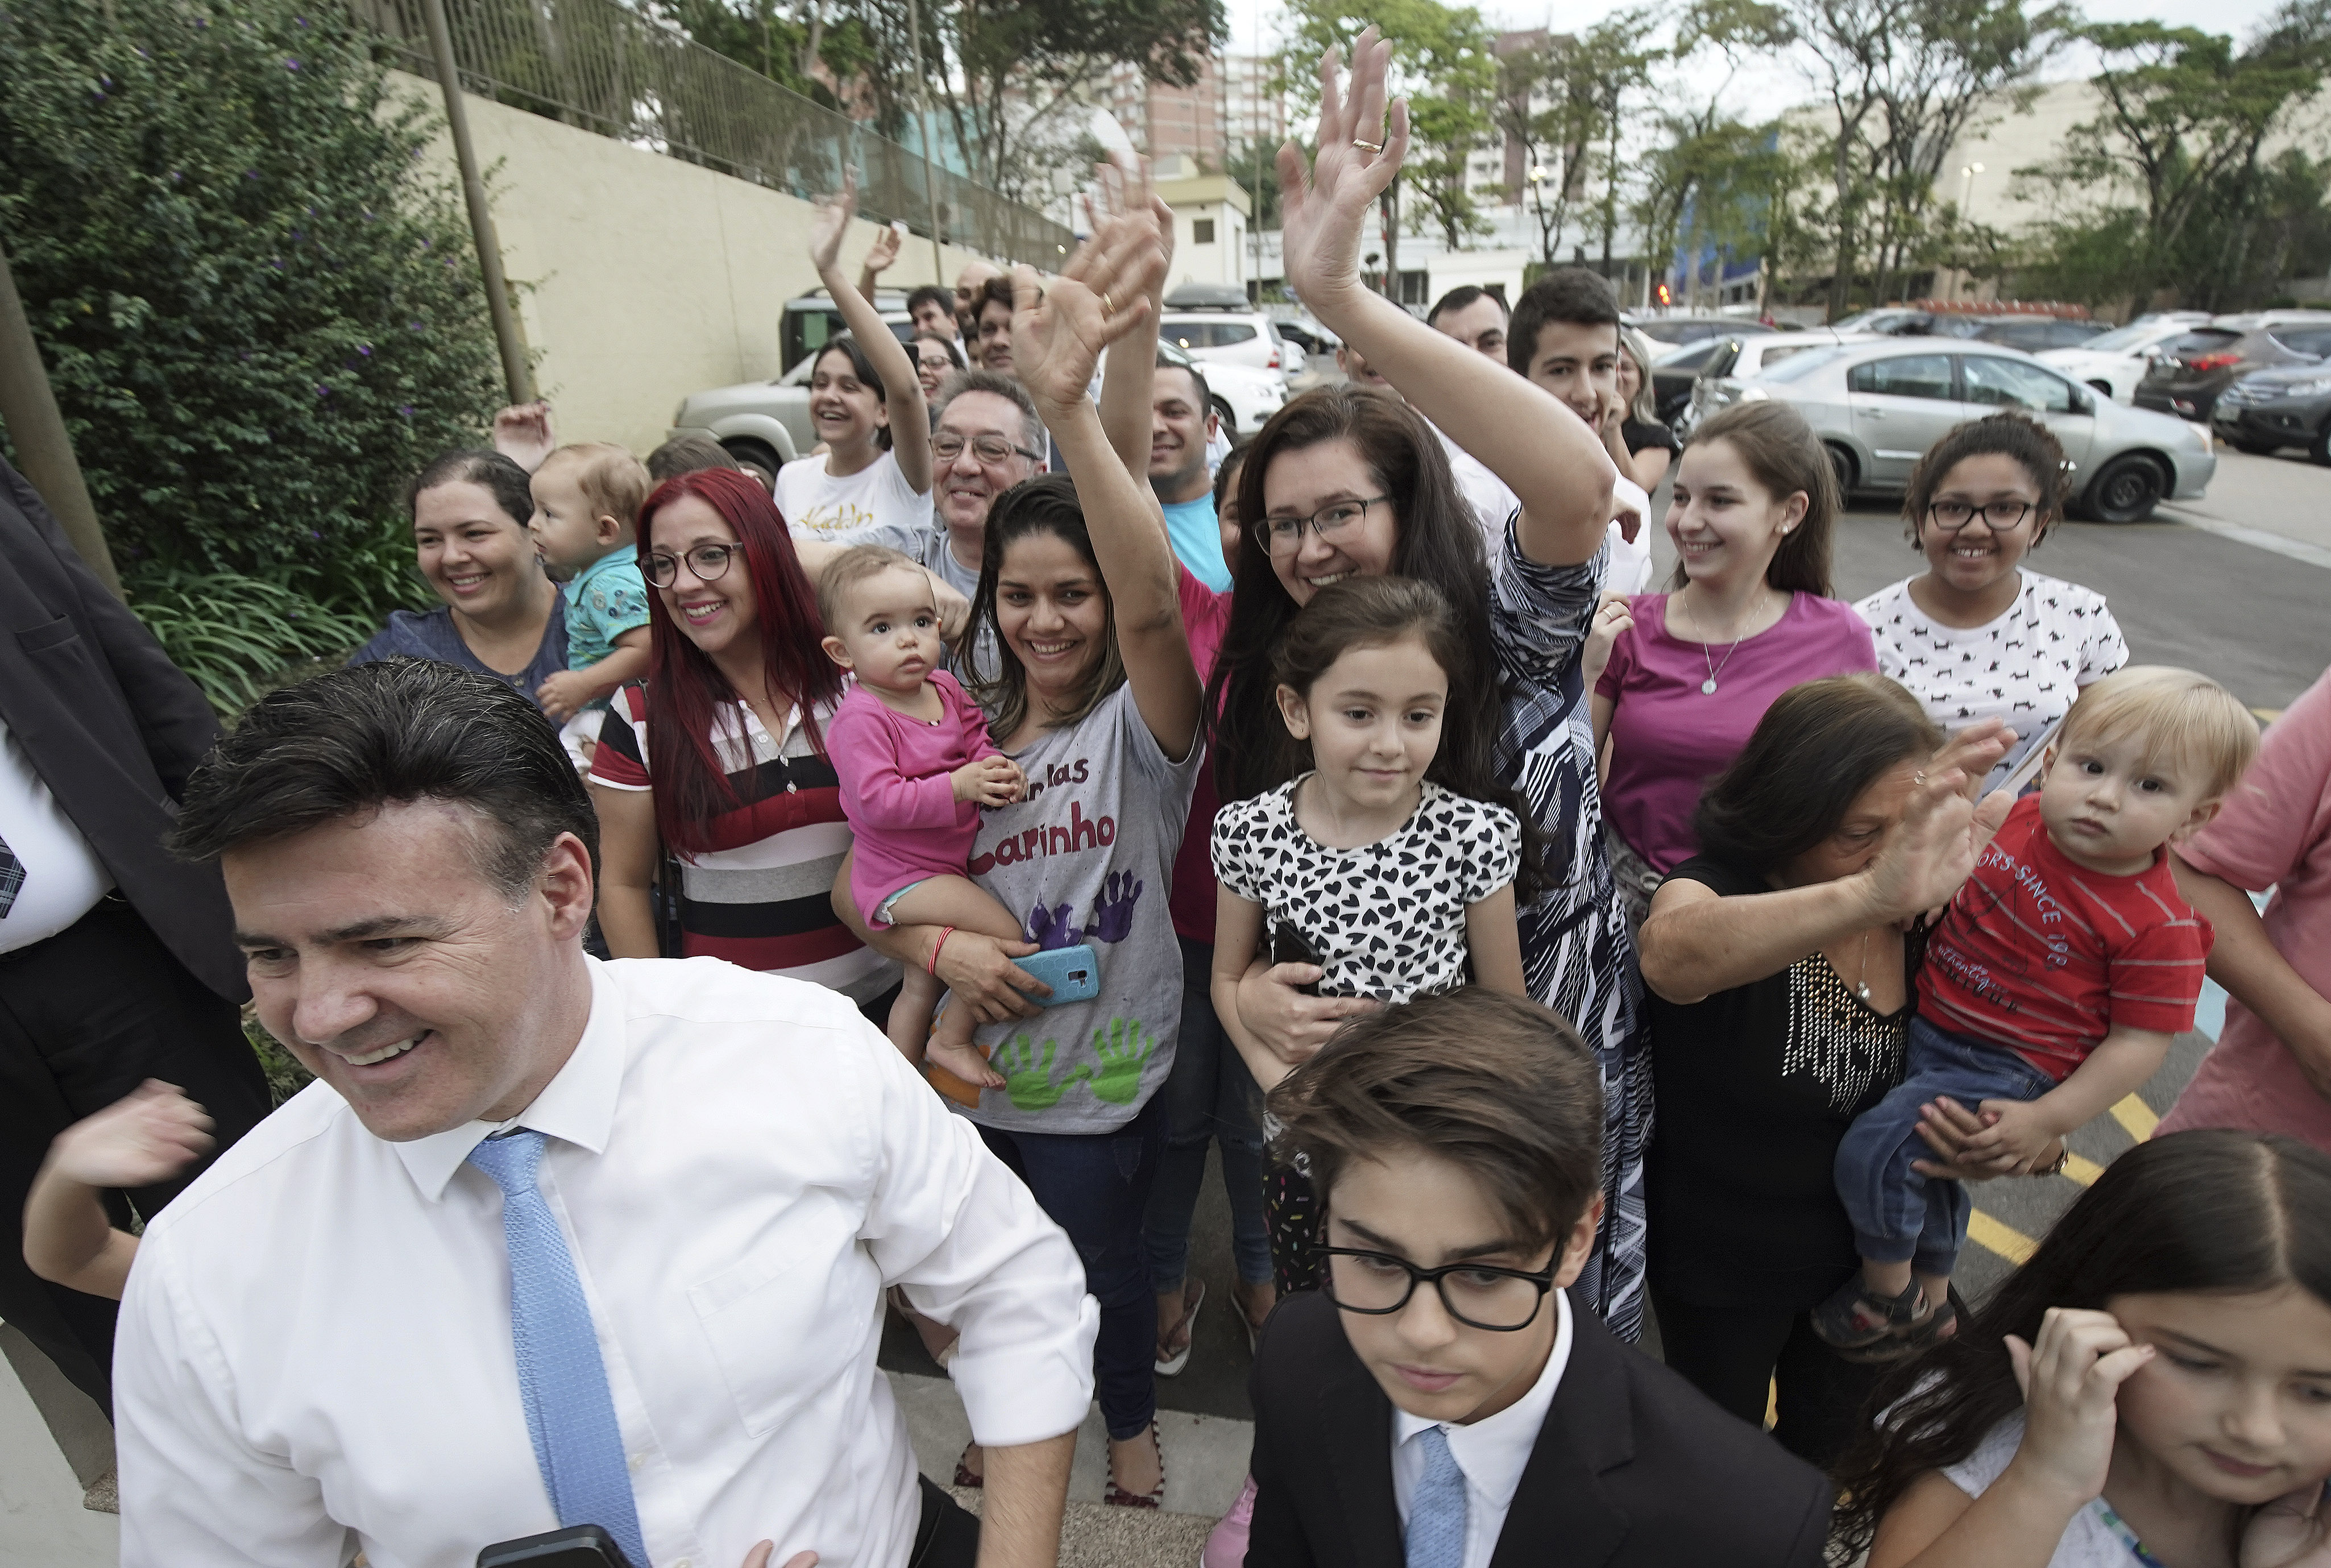 Those outside the Sao Paulo Temple Visitors' Center wave to President Russell M. Nelson of The Church of Jesus Christ of Latter-day Saints in Sao Paulo, Brazil, on Aug. 31, 2019.